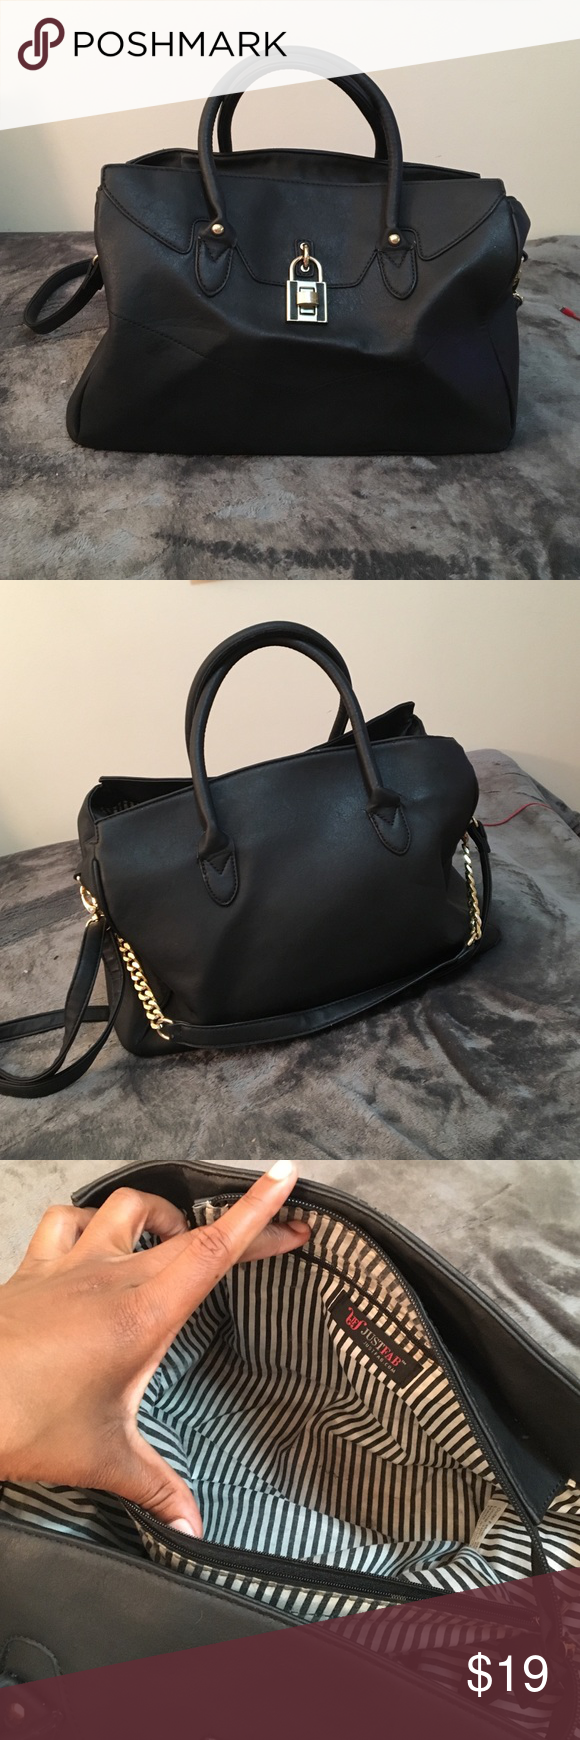 JustFab Handbag Black and cute with any outfit! Flaws on inside. Not brand listed. Forever 21 Bags